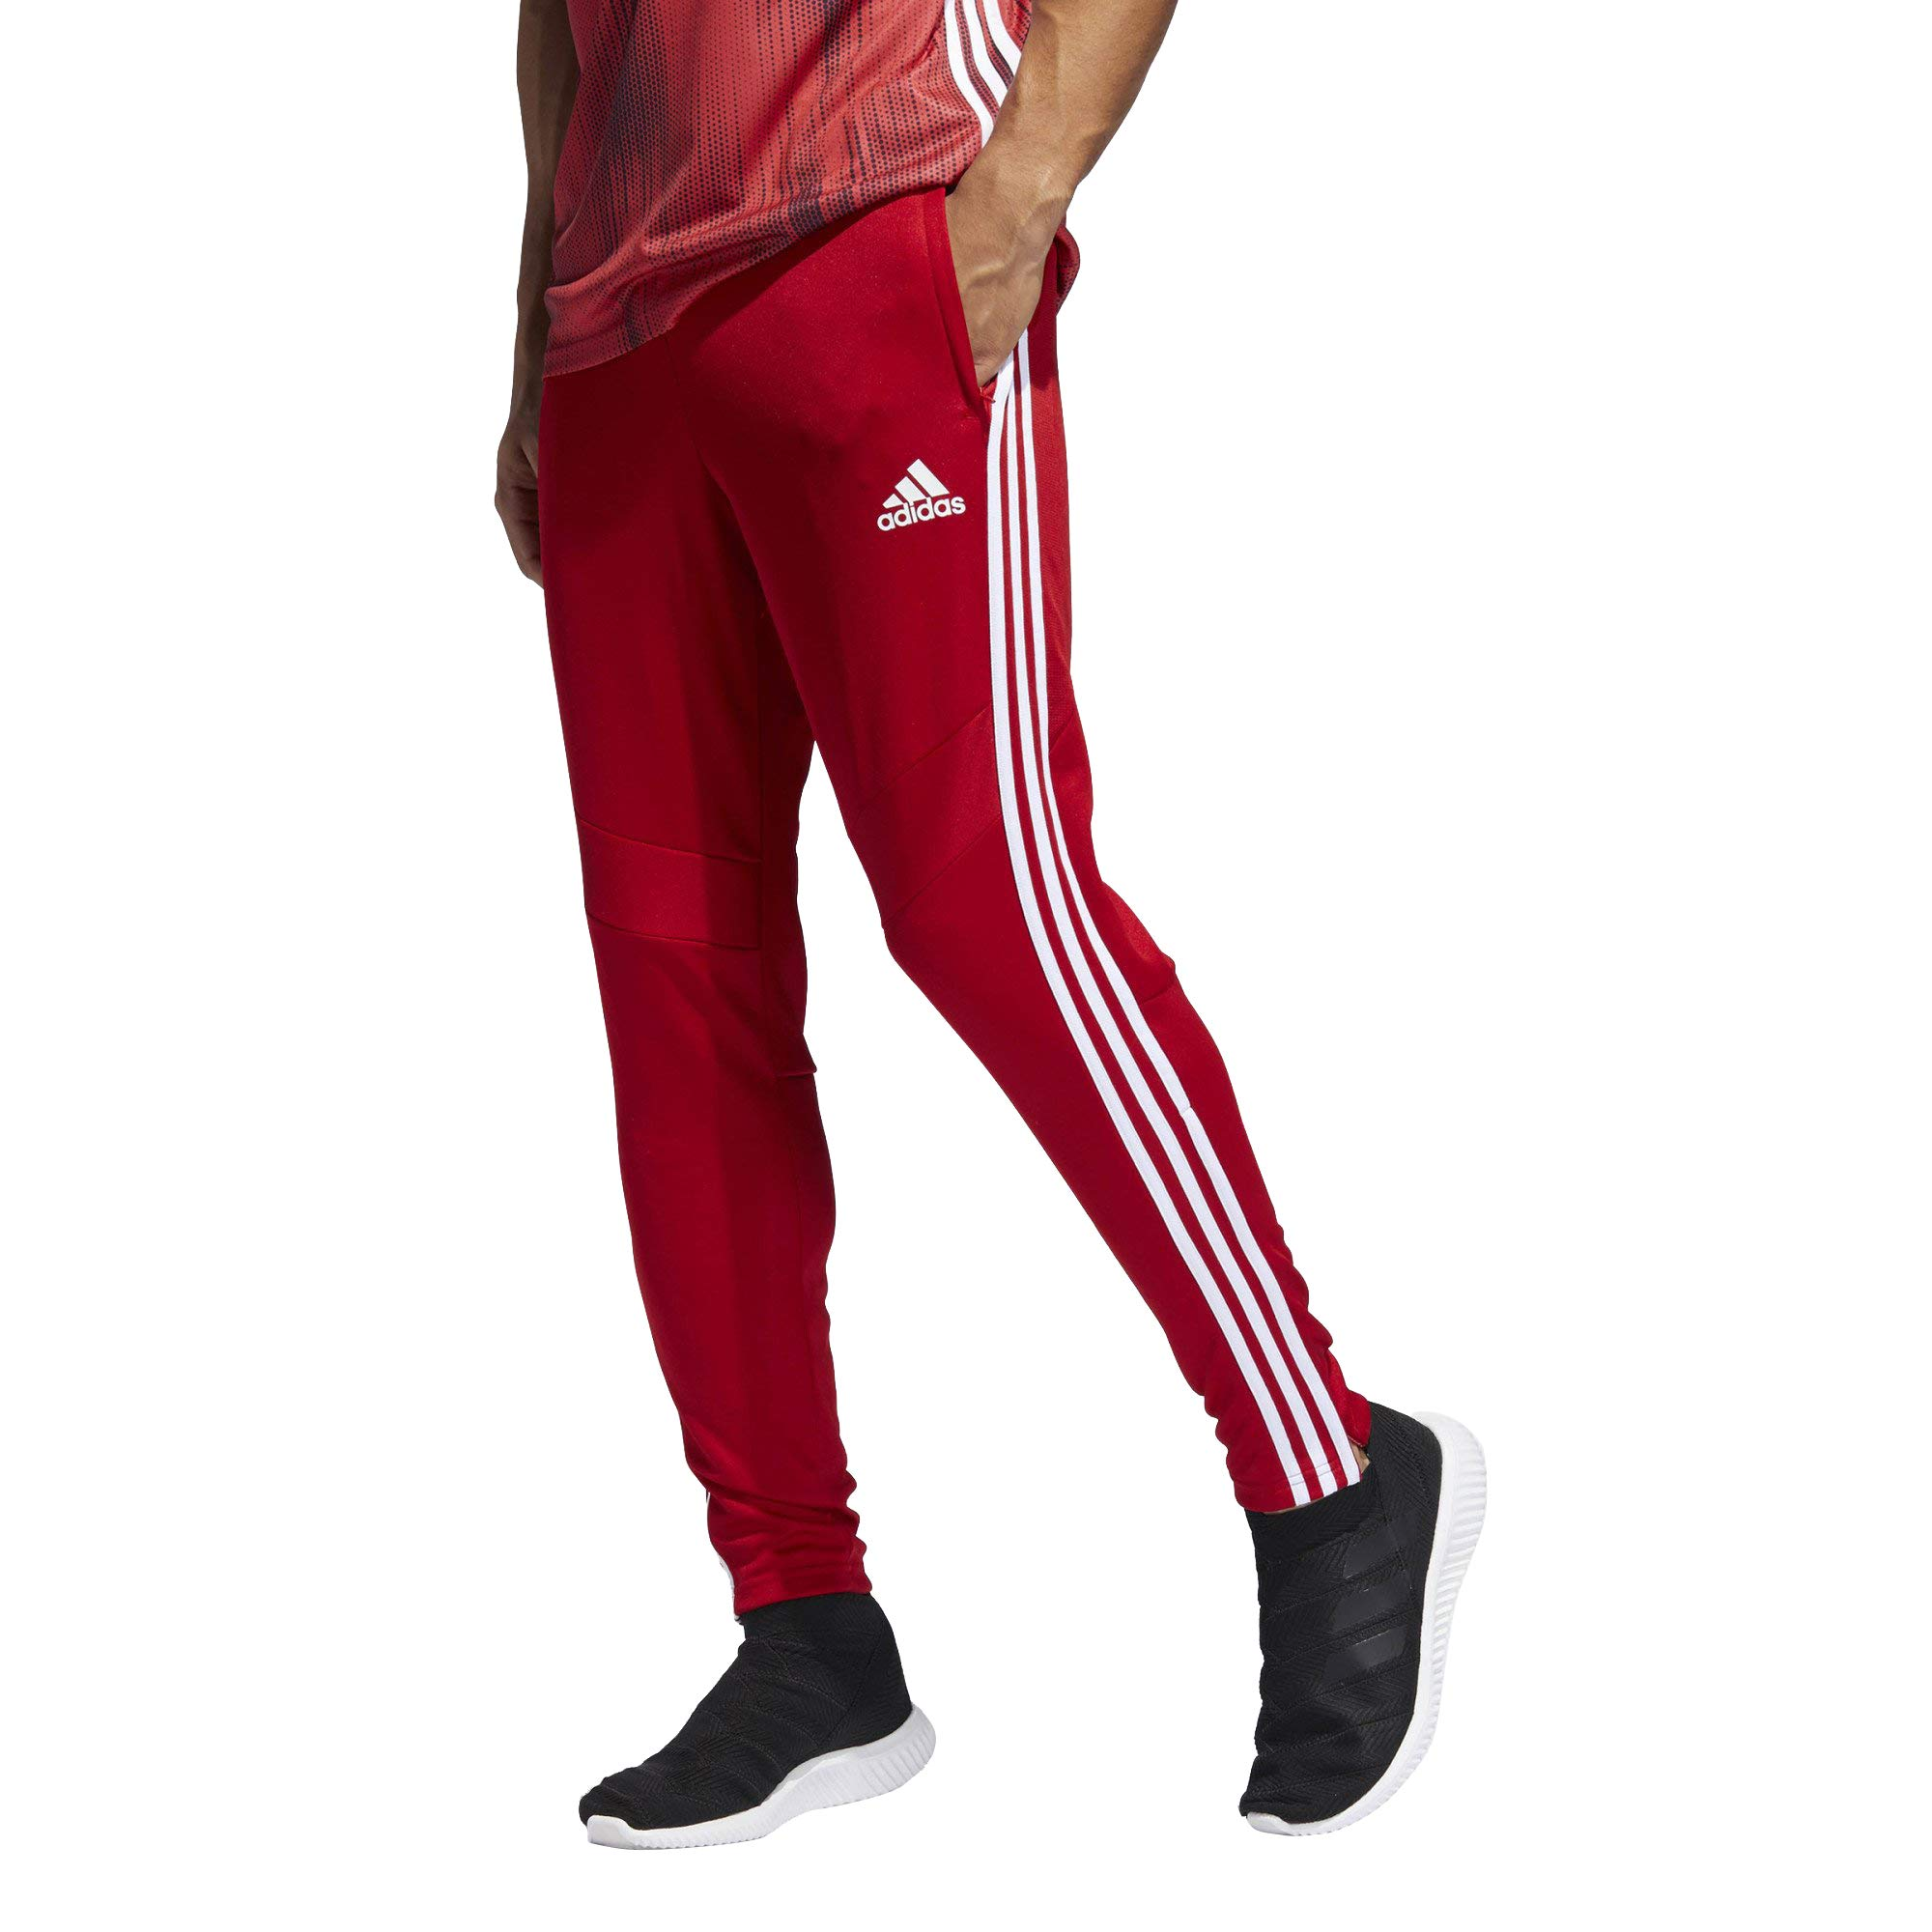 adidas Men's Soccer Tiro 19 Training Pant, Power Red/White, 3X-Large by adidas (Image #1)